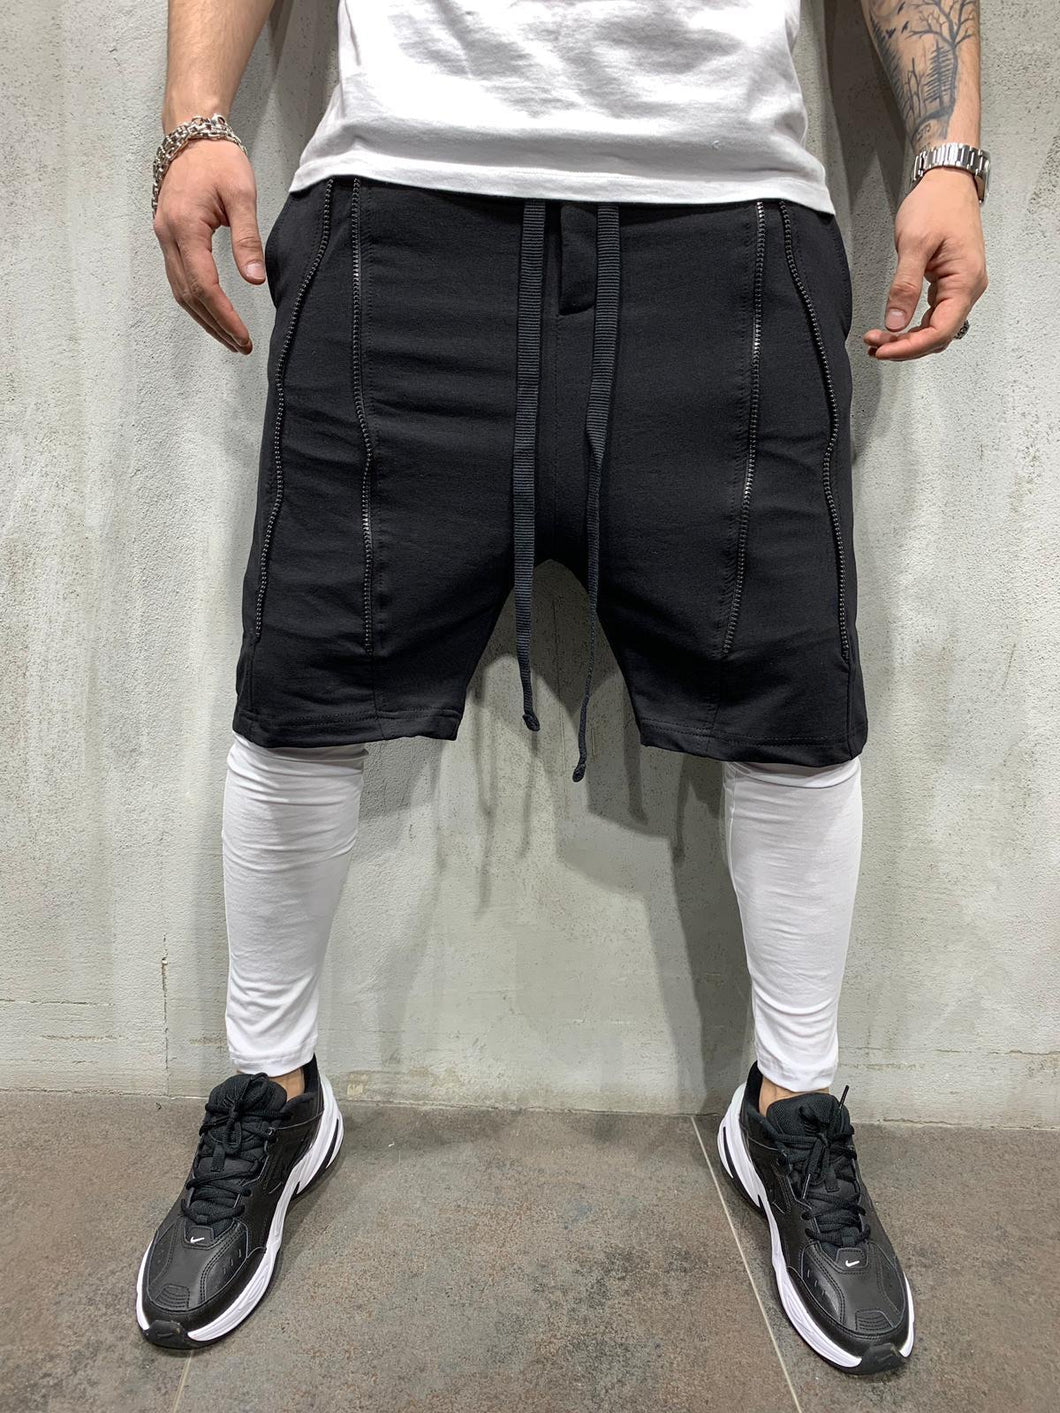 Build In Black White Joggers AY418 Streetwear Mens Jogger Pants - Sneakerjeans